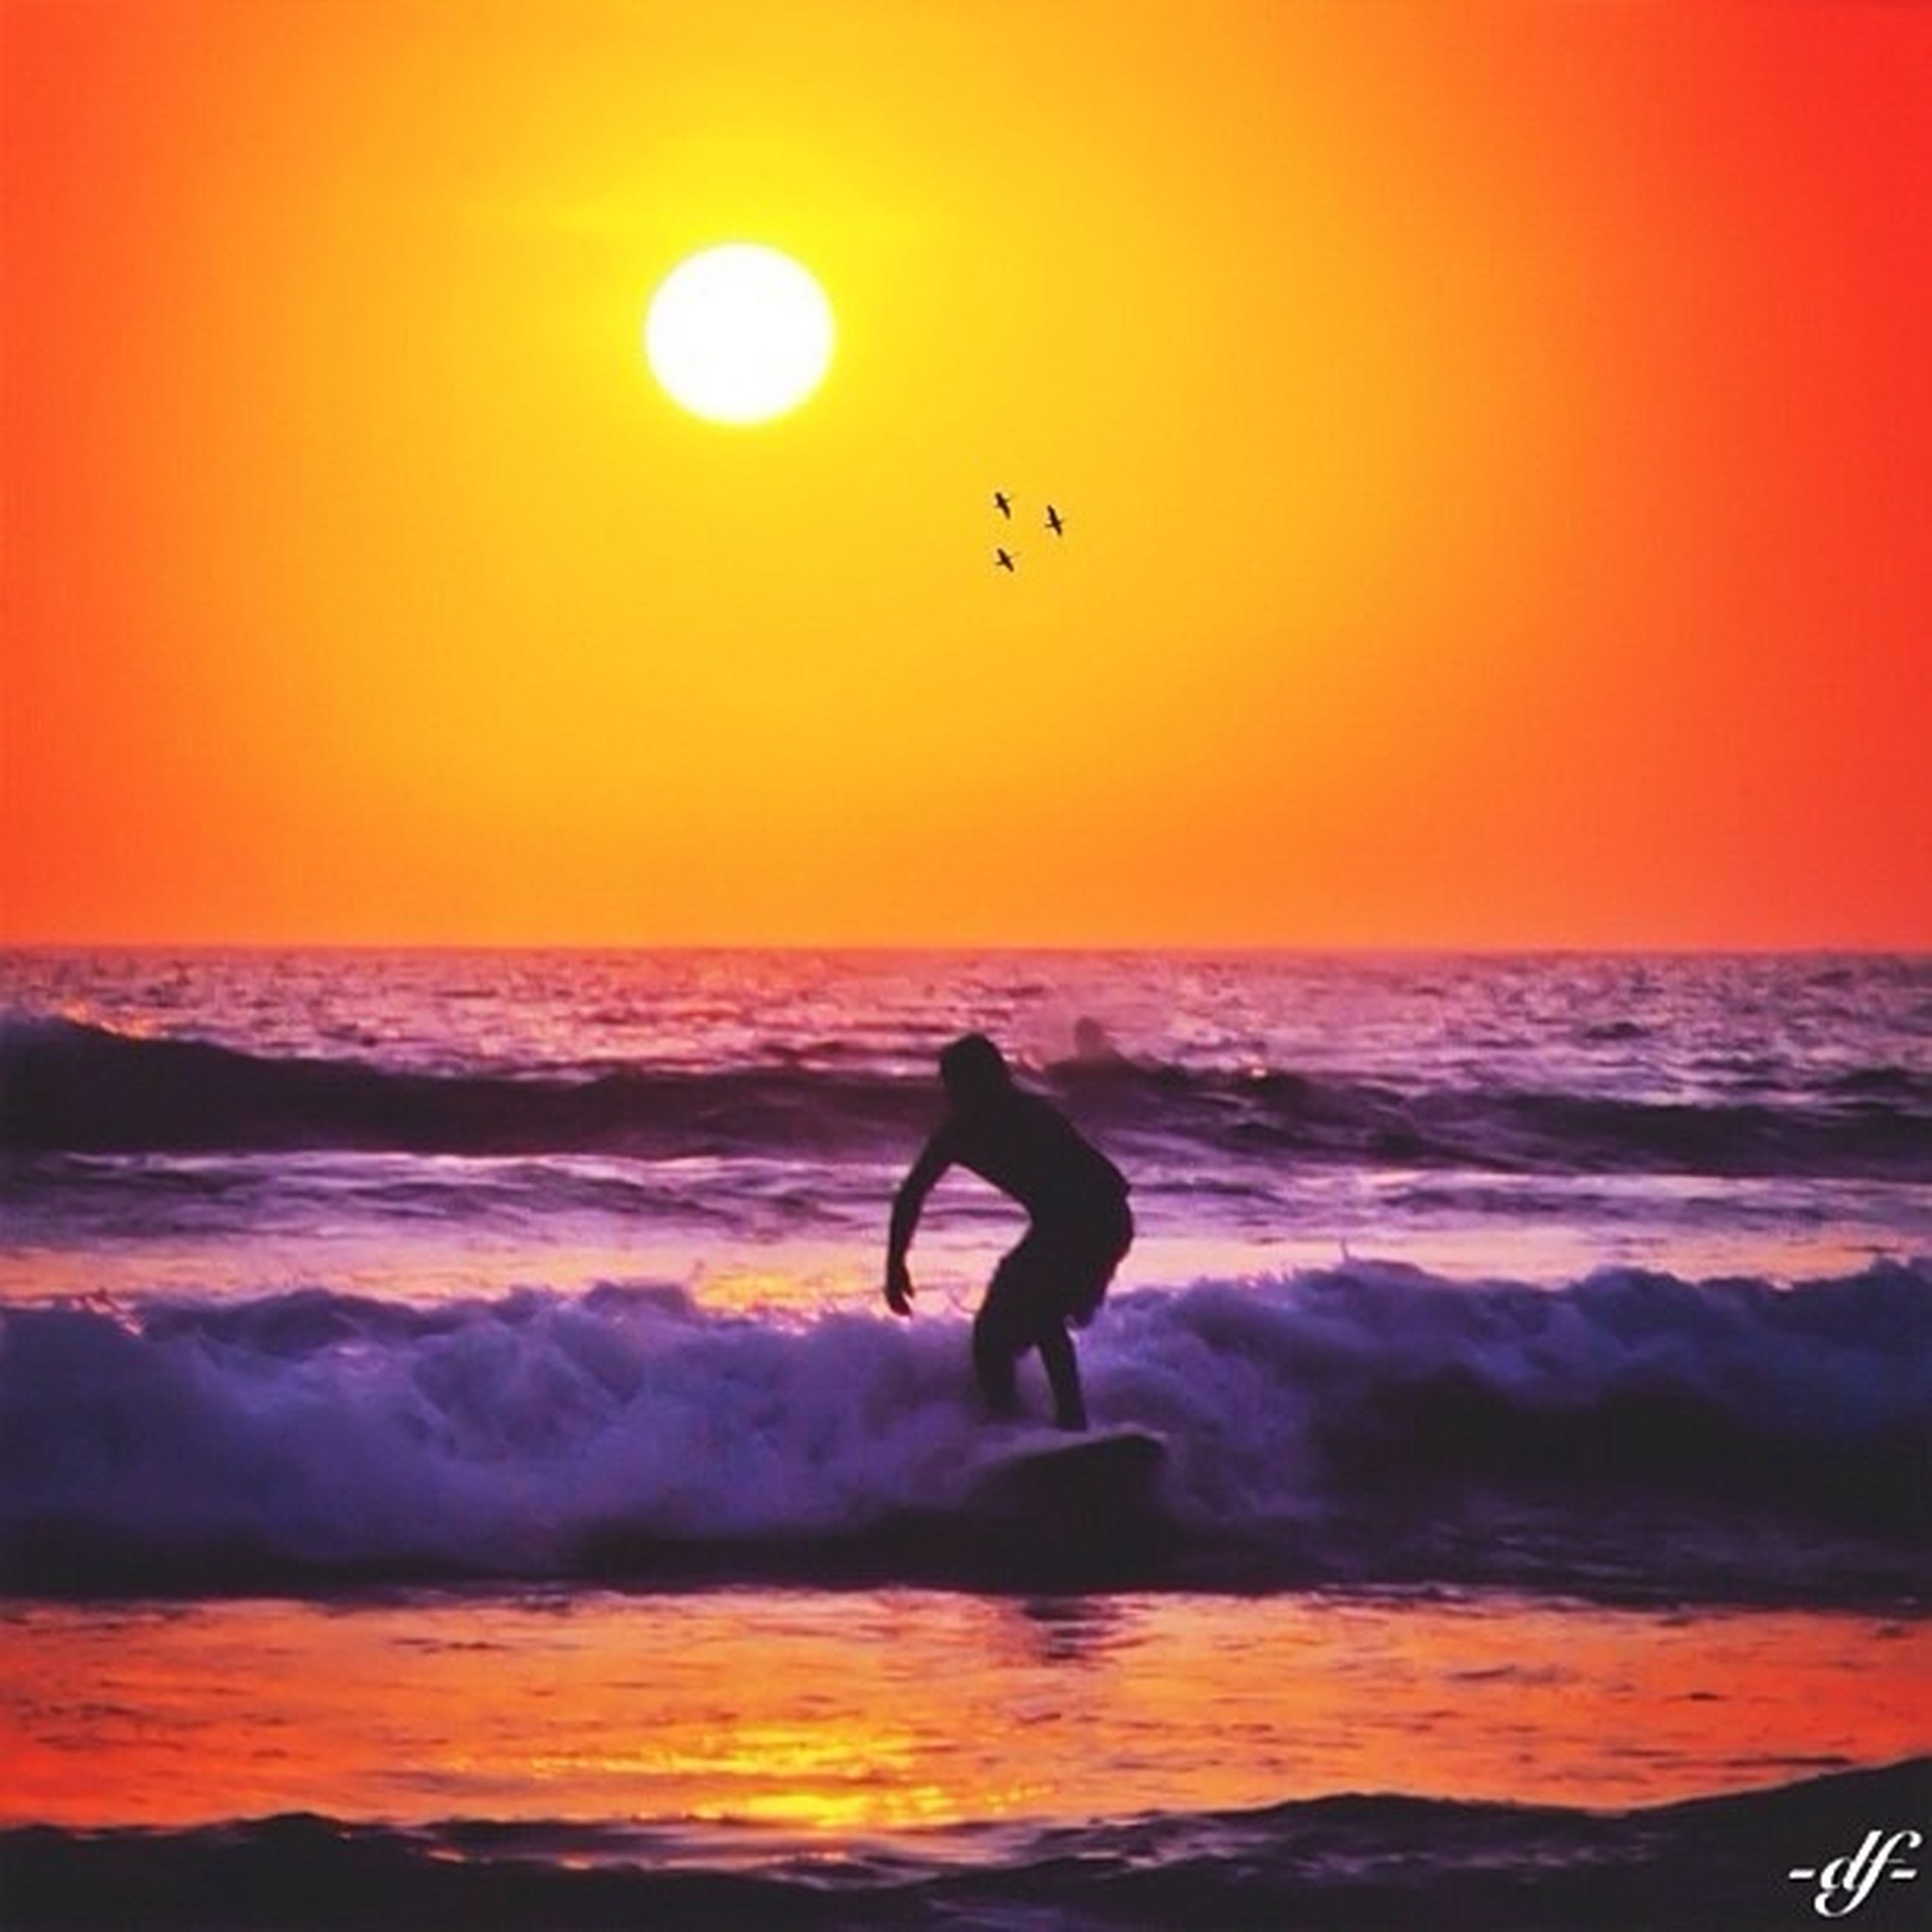 sunset, sea, horizon over water, orange color, water, silhouette, beach, scenics, leisure activity, shore, wave, beauty in nature, tranquil scene, lifestyles, sun, idyllic, tranquility, full length